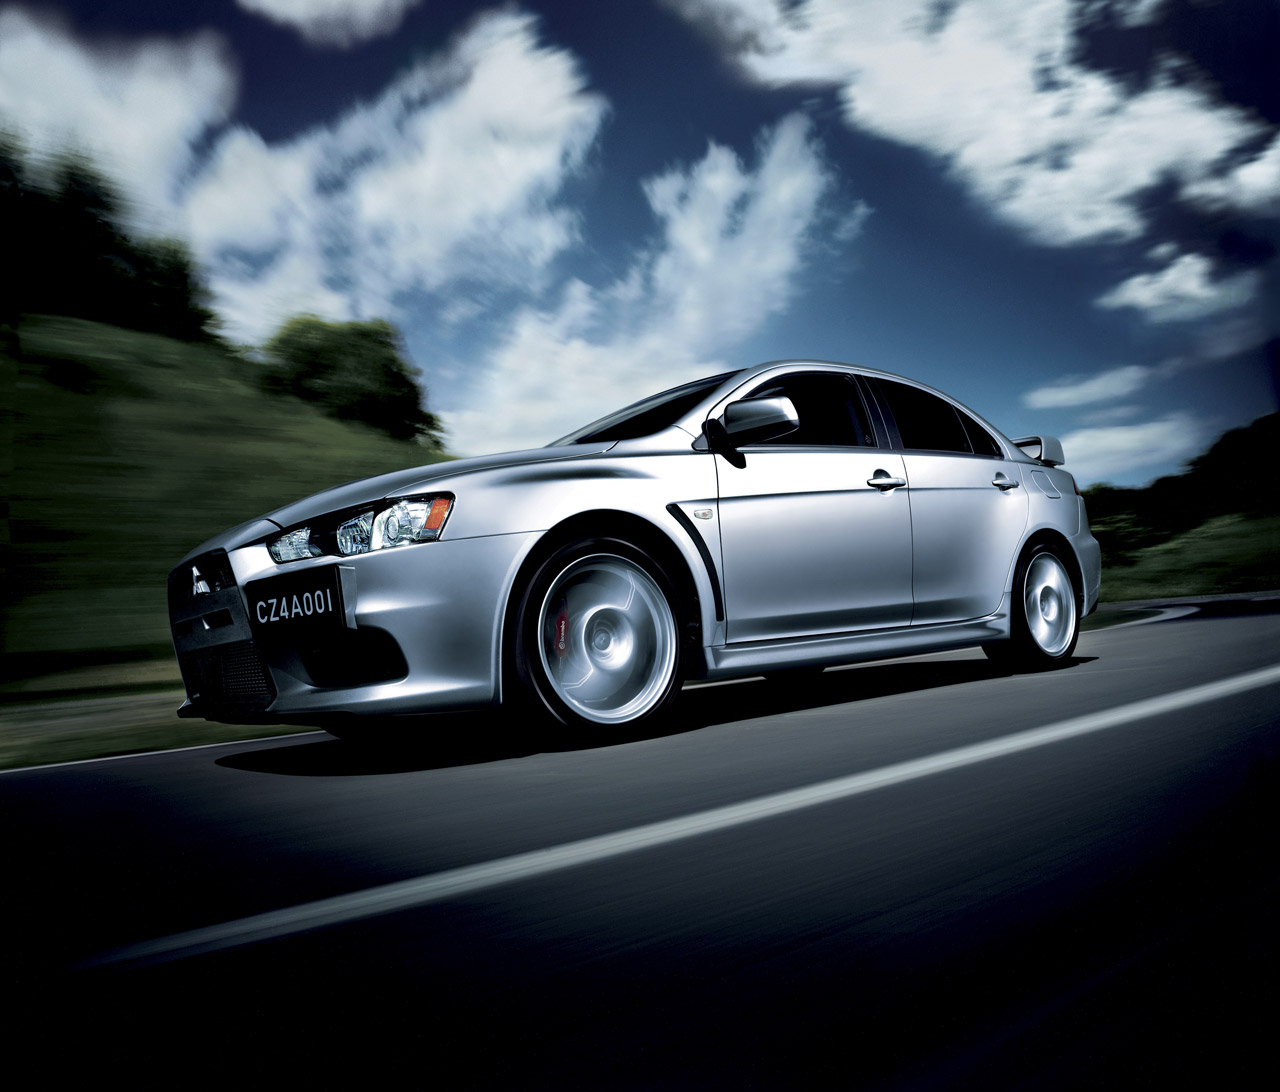 Mitsubishi Background: 2011 Mitsubishi Lancer Evolution Wallpaper CAR DESIGNS